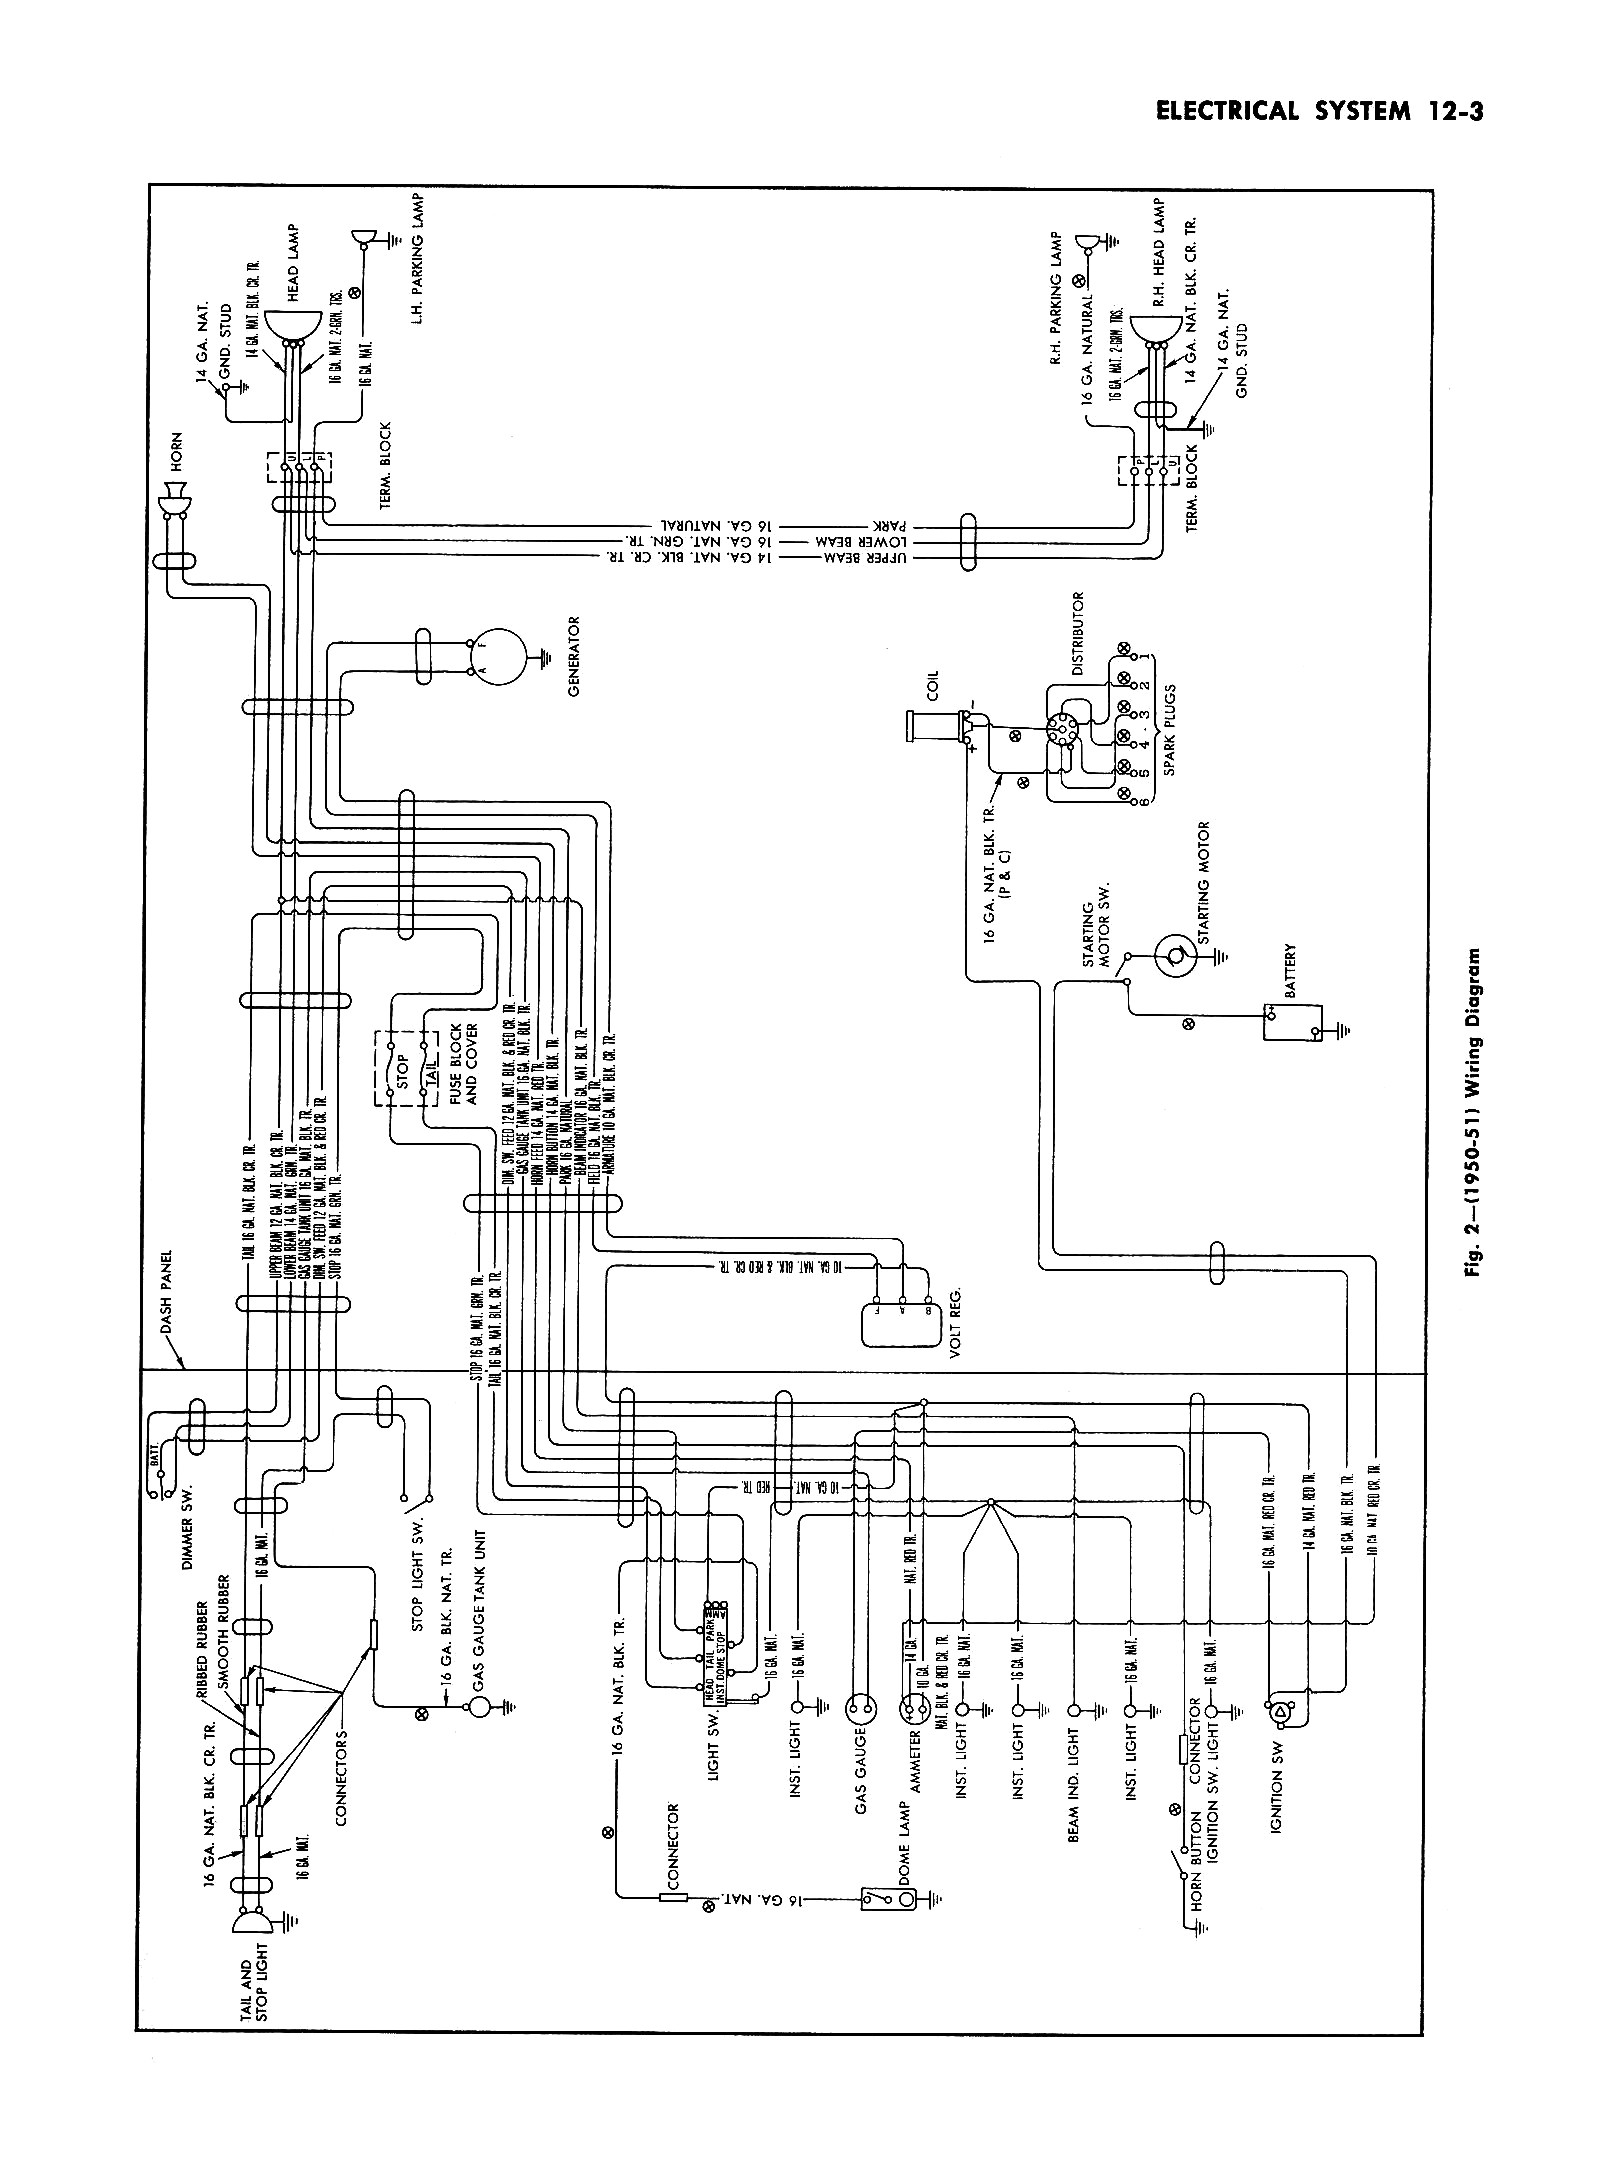 How Do I Wire C Neutral Safety Switch The H A M B Best Ford Wiring Diagram furthermore Mwirechev Wd furthermore  likewise  further Ford F Custom Cab Wiring Diagram Of Ford F Wiring Diagram. on 1963 chevy c10 wiring diagram